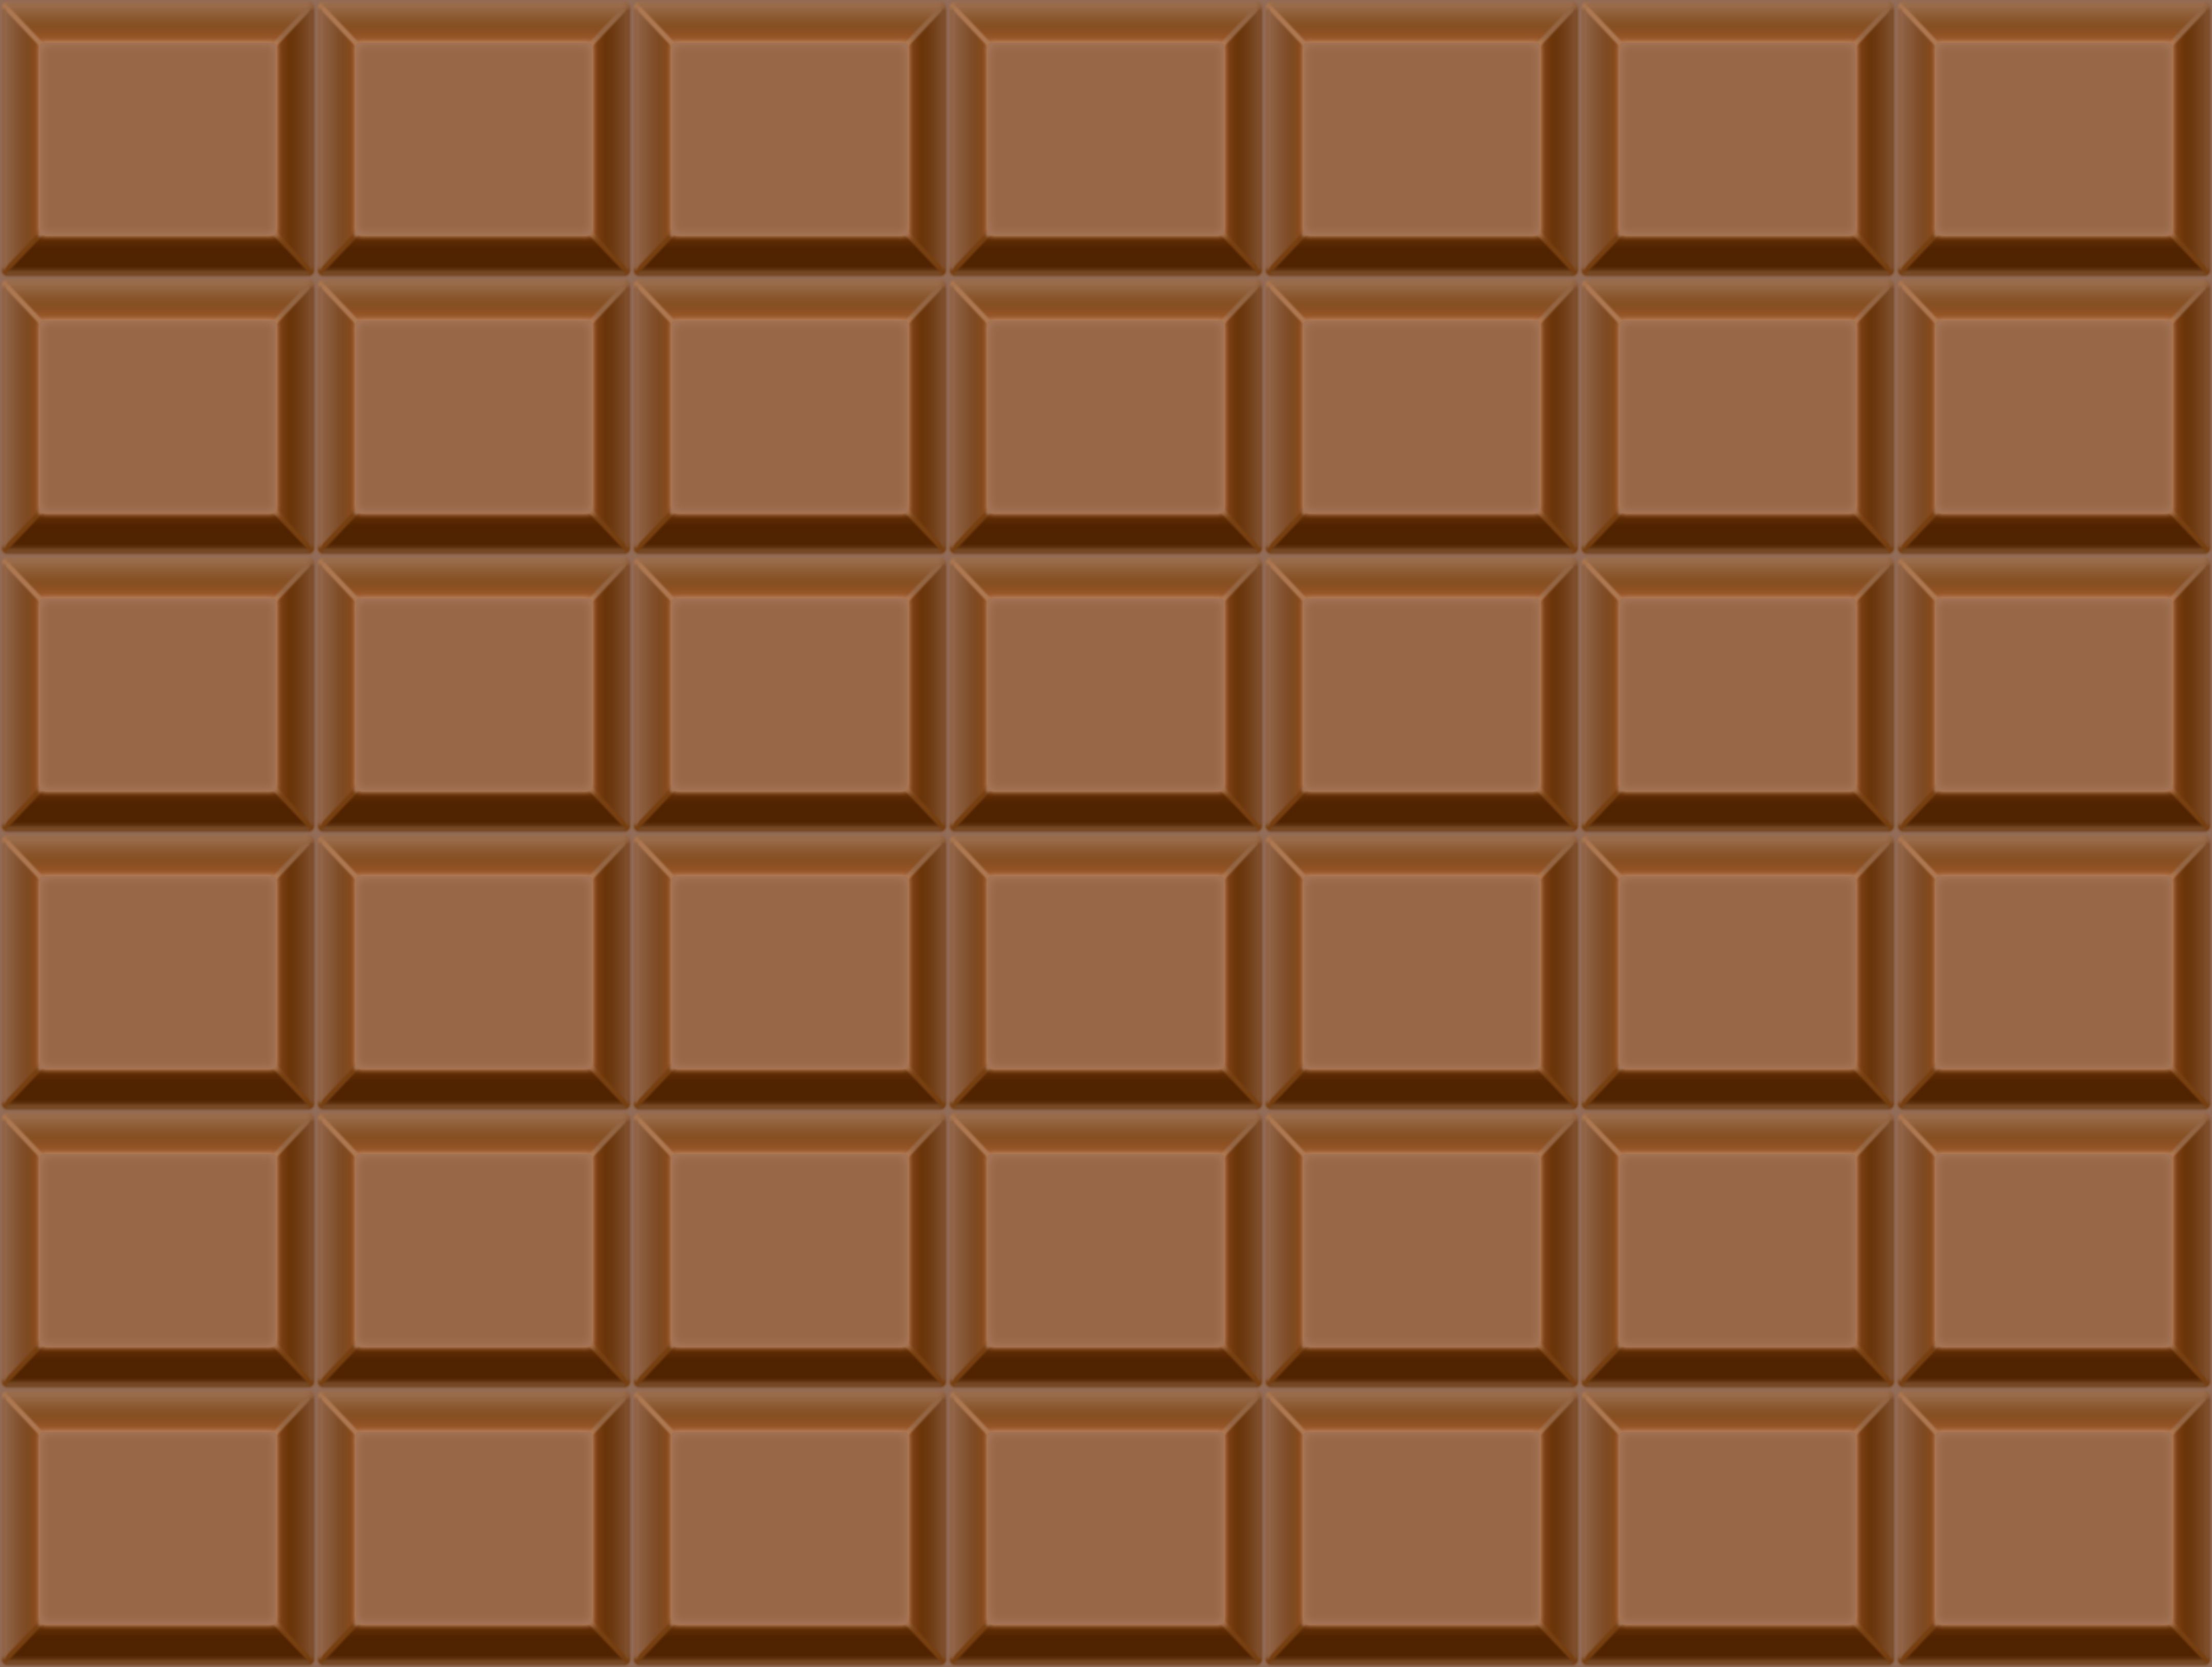 chocolate, texture, chocolateная tile, download background, chocolate texture, photo